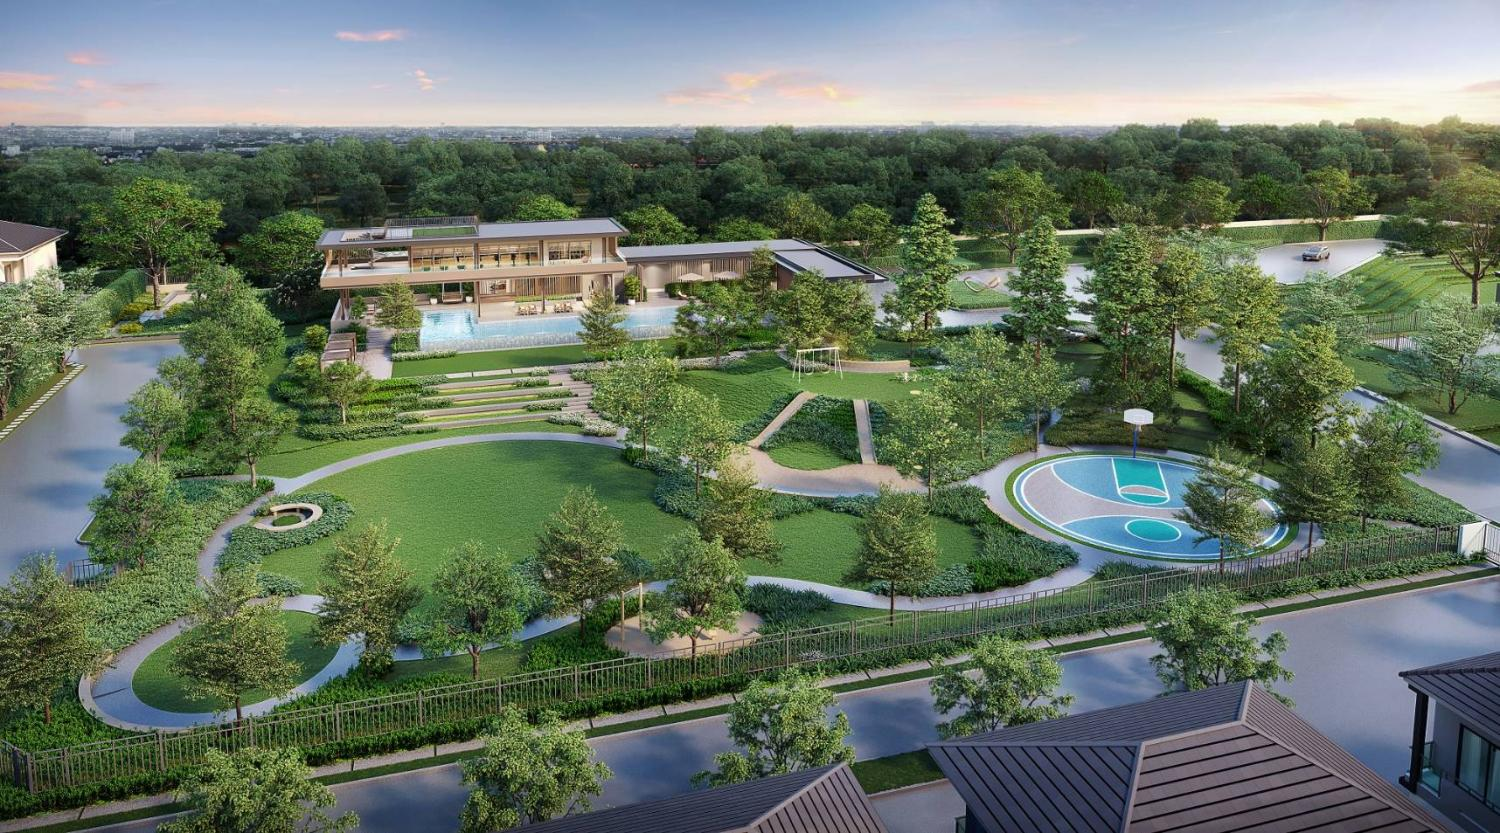 CPN project targets younger buyers